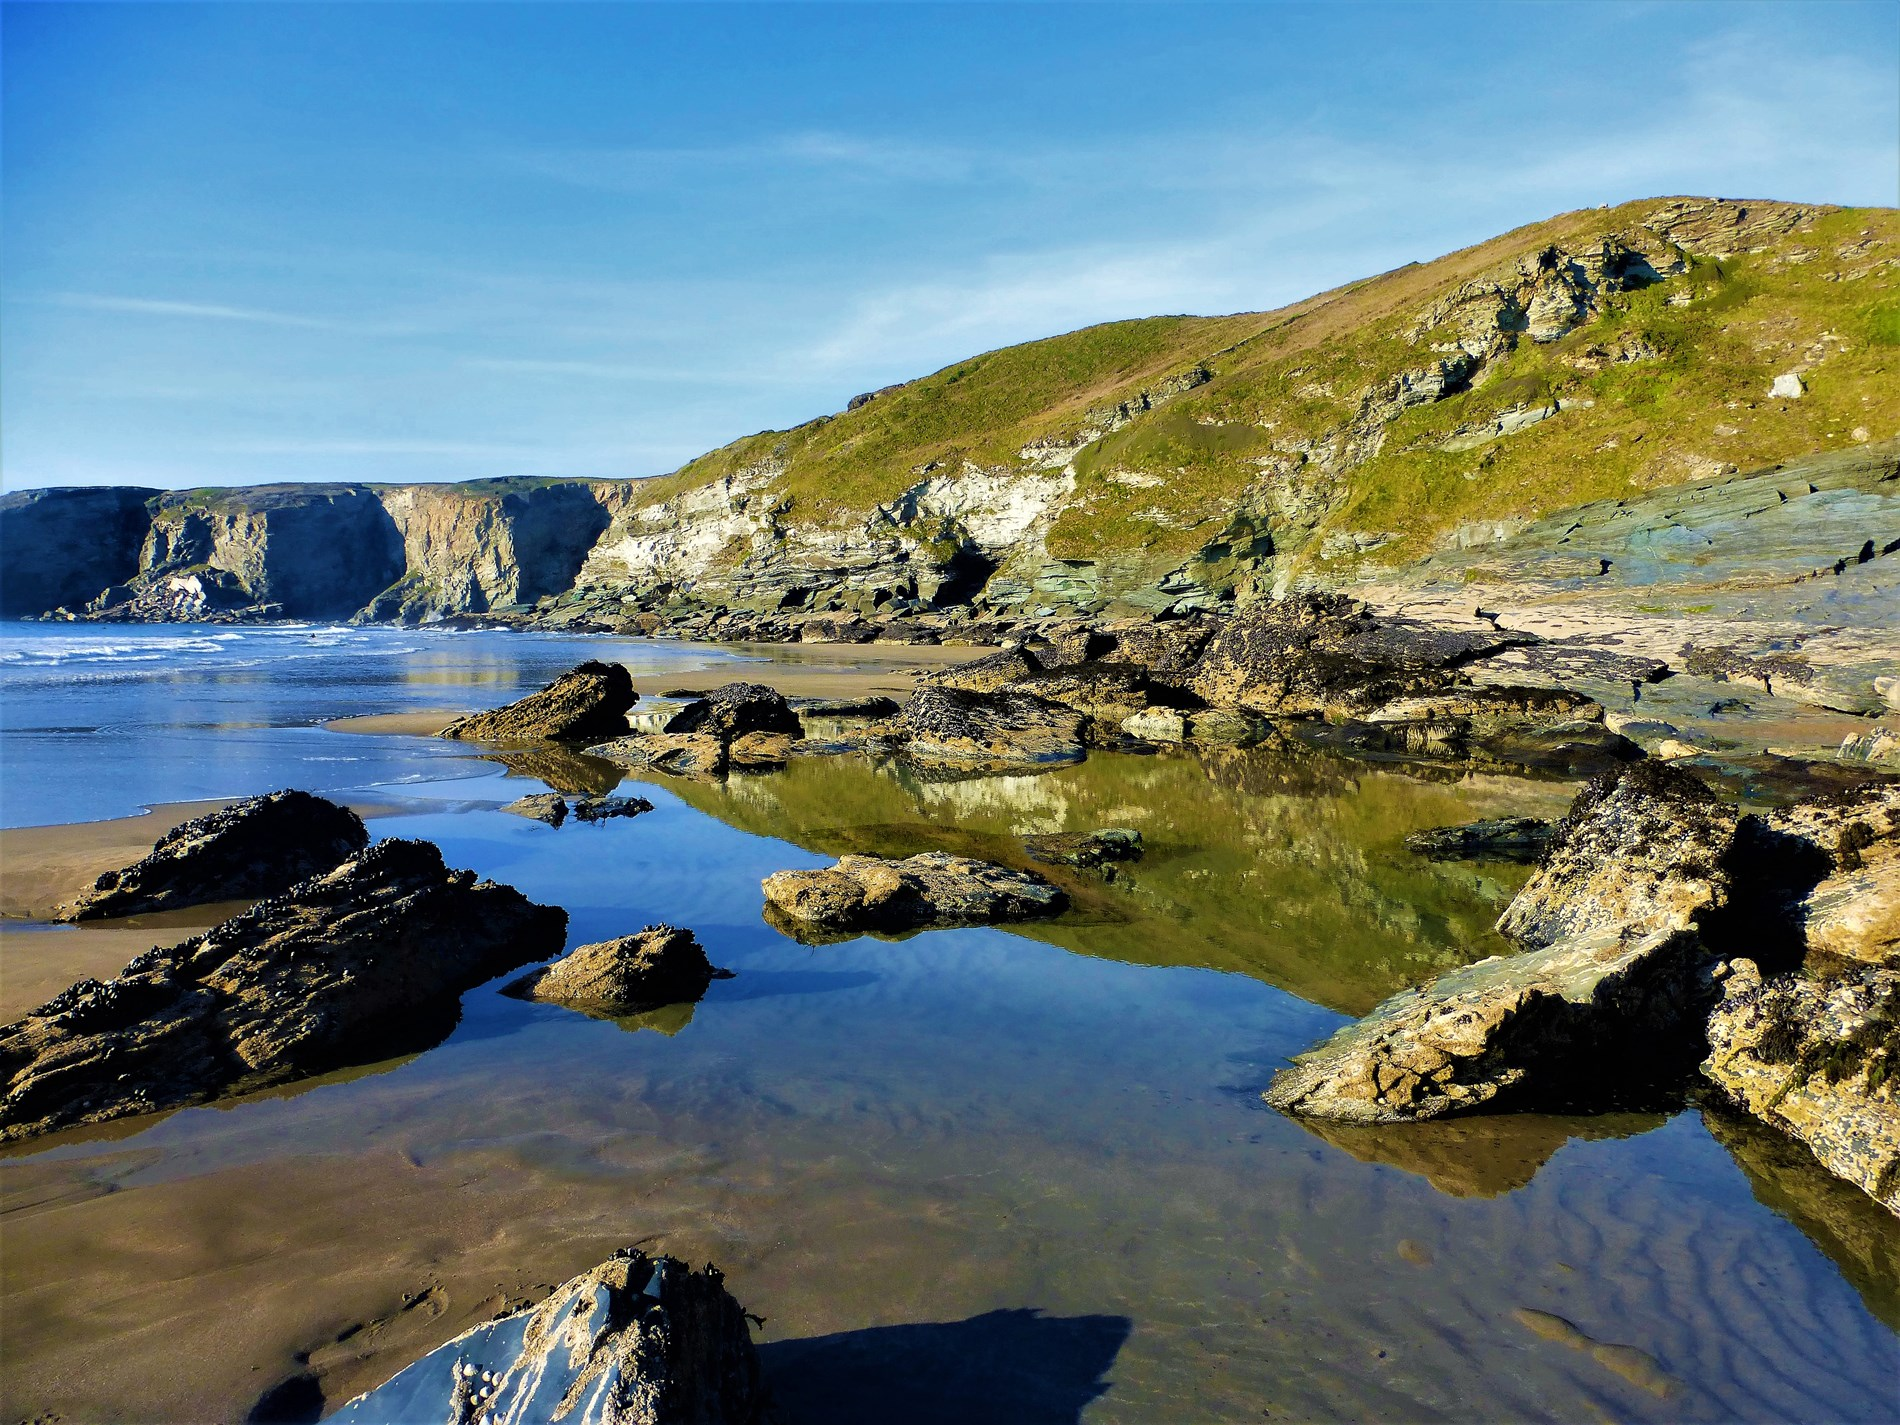 Under half an hour away from beautiful beaches on the North Coast